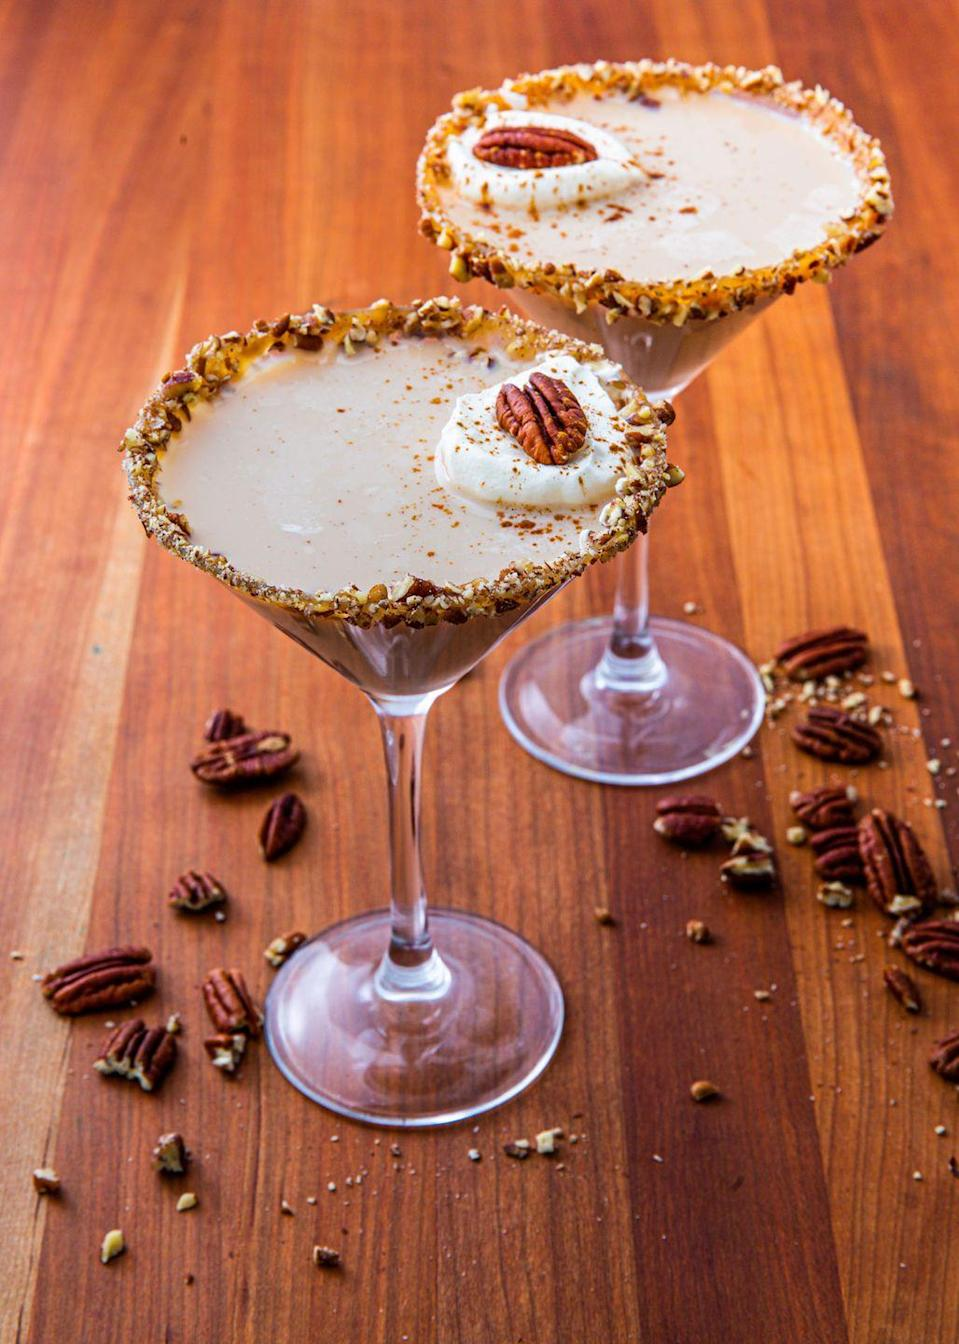 """<p>These martinis might <em>look</em> innocent, but trust us, they're STRONG. <br></p><p>Get the recipe from <a href=""""https://www.delish.com/cooking/recipe-ideas/a24132507/pecan-pie-martini-recipe/"""" rel=""""nofollow noopener"""" target=""""_blank"""" data-ylk=""""slk:Delish"""" class=""""link rapid-noclick-resp"""">Delish</a>.</p>"""